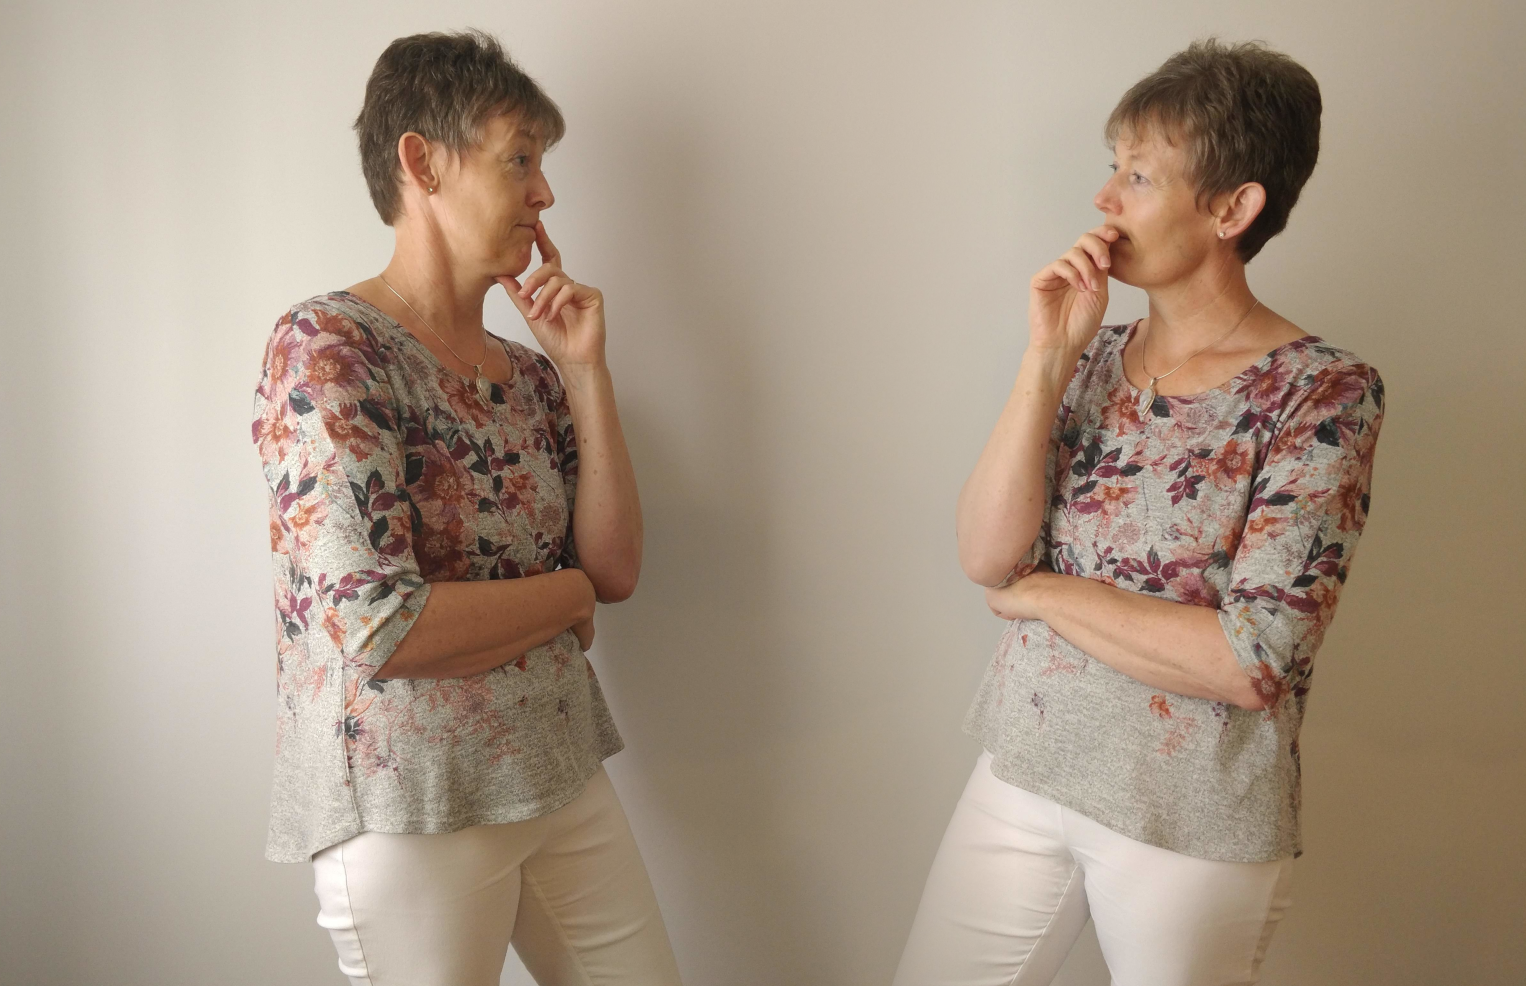 Two identical women stand looking at each other with puzzled expressions on their faces. The women are wearing white pants and grey tops with a floral pattern.